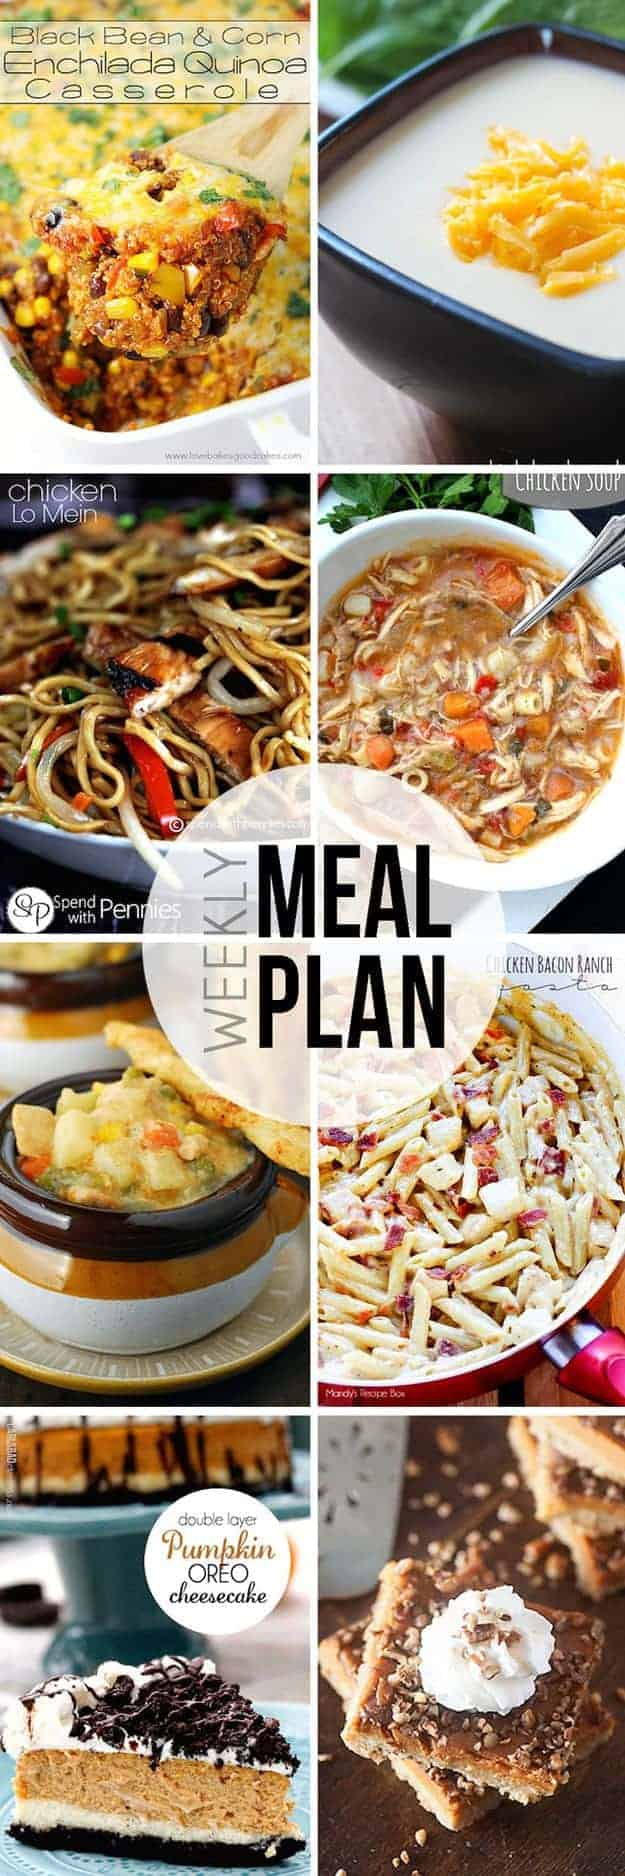 An easy meal plan for weeknight dinners!